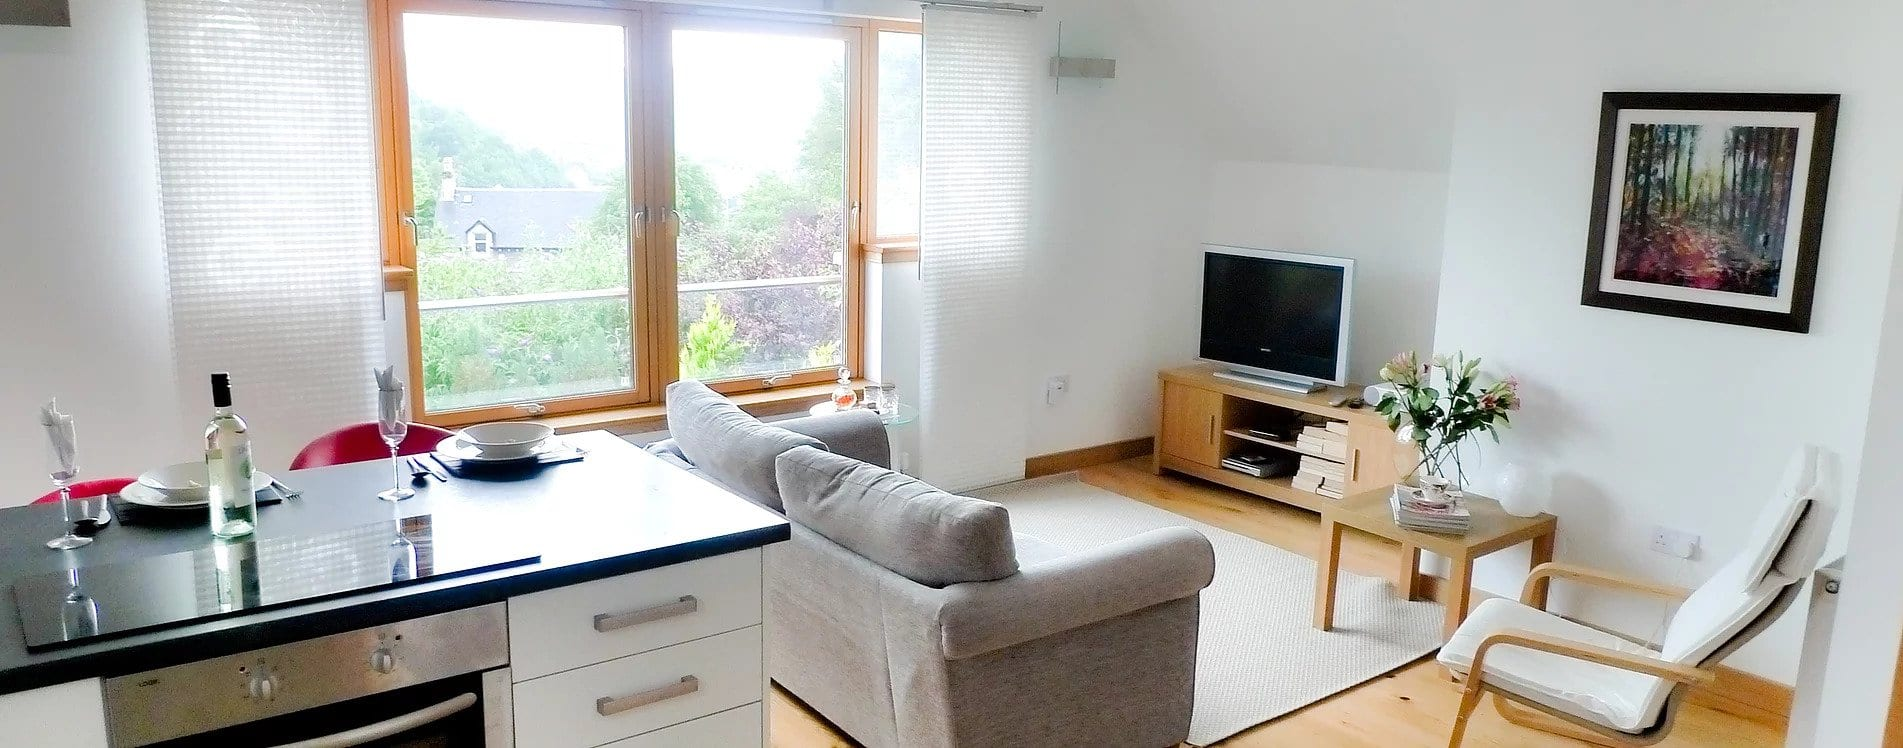 rowan tree apartments is a self catering apartment in oban